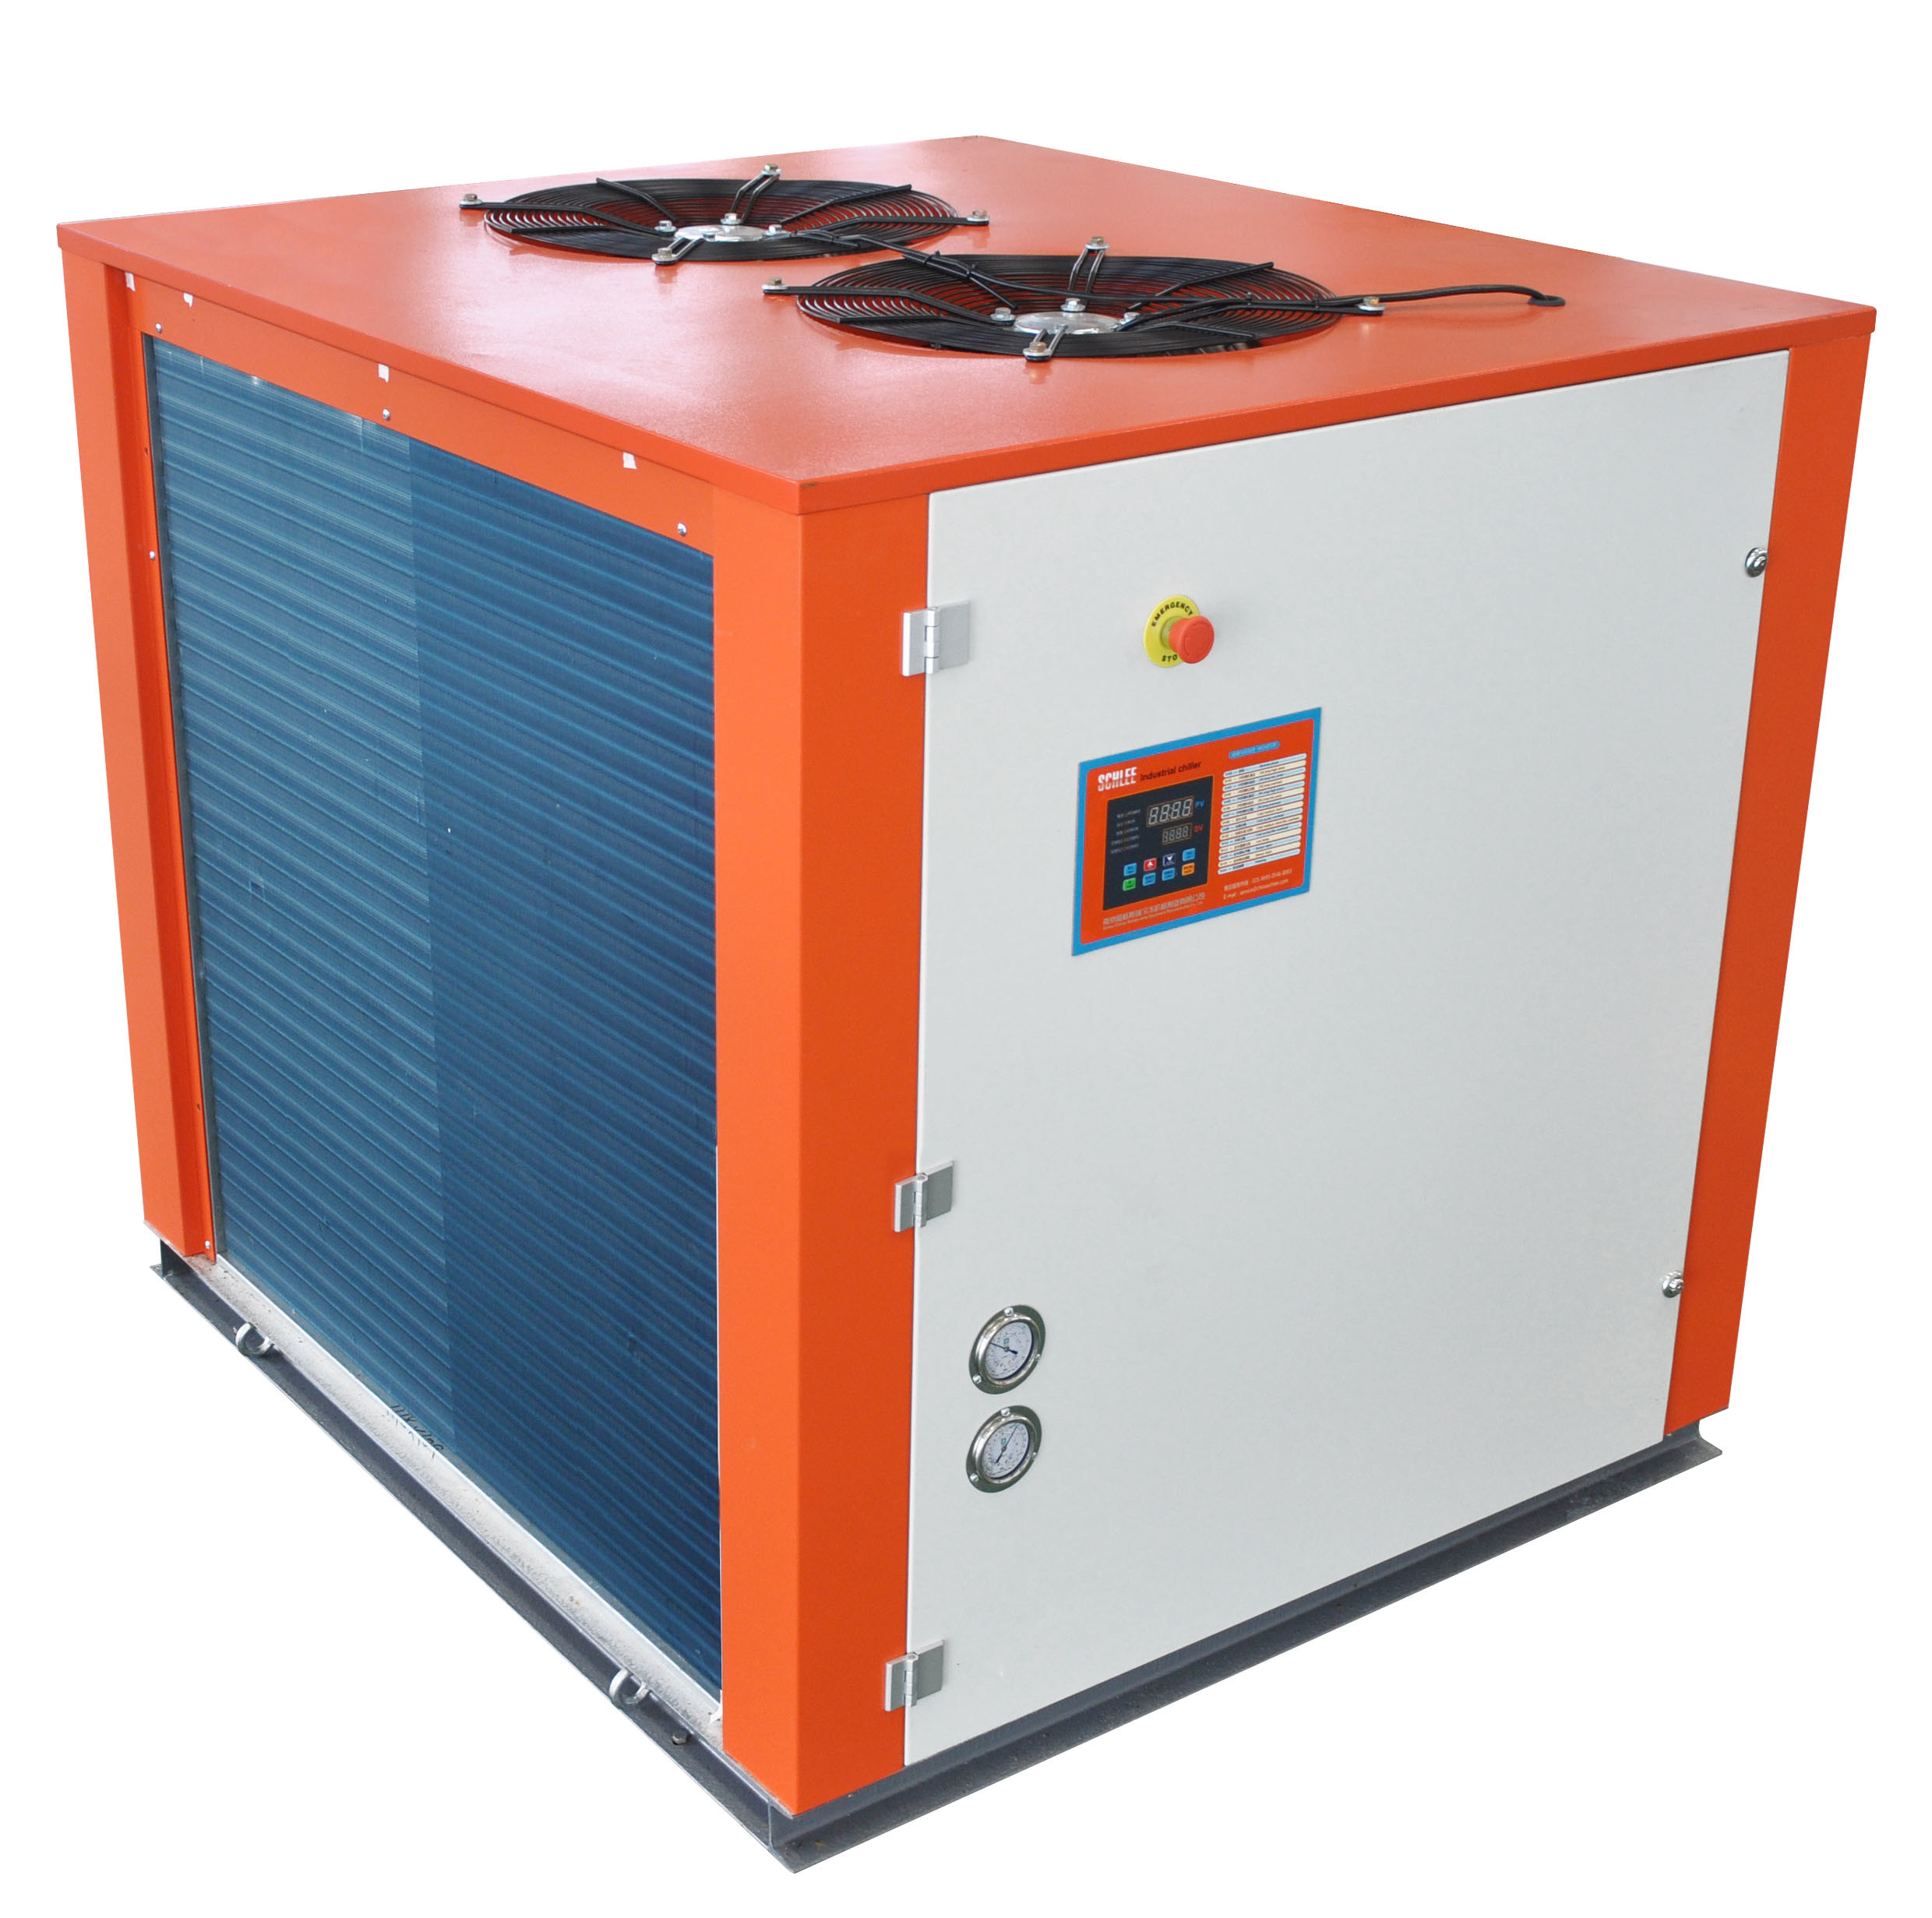 7.8kw Industrial Air Cooled Low Temperature Chiller with Scroll Compressor for Beer Fermentation Tank